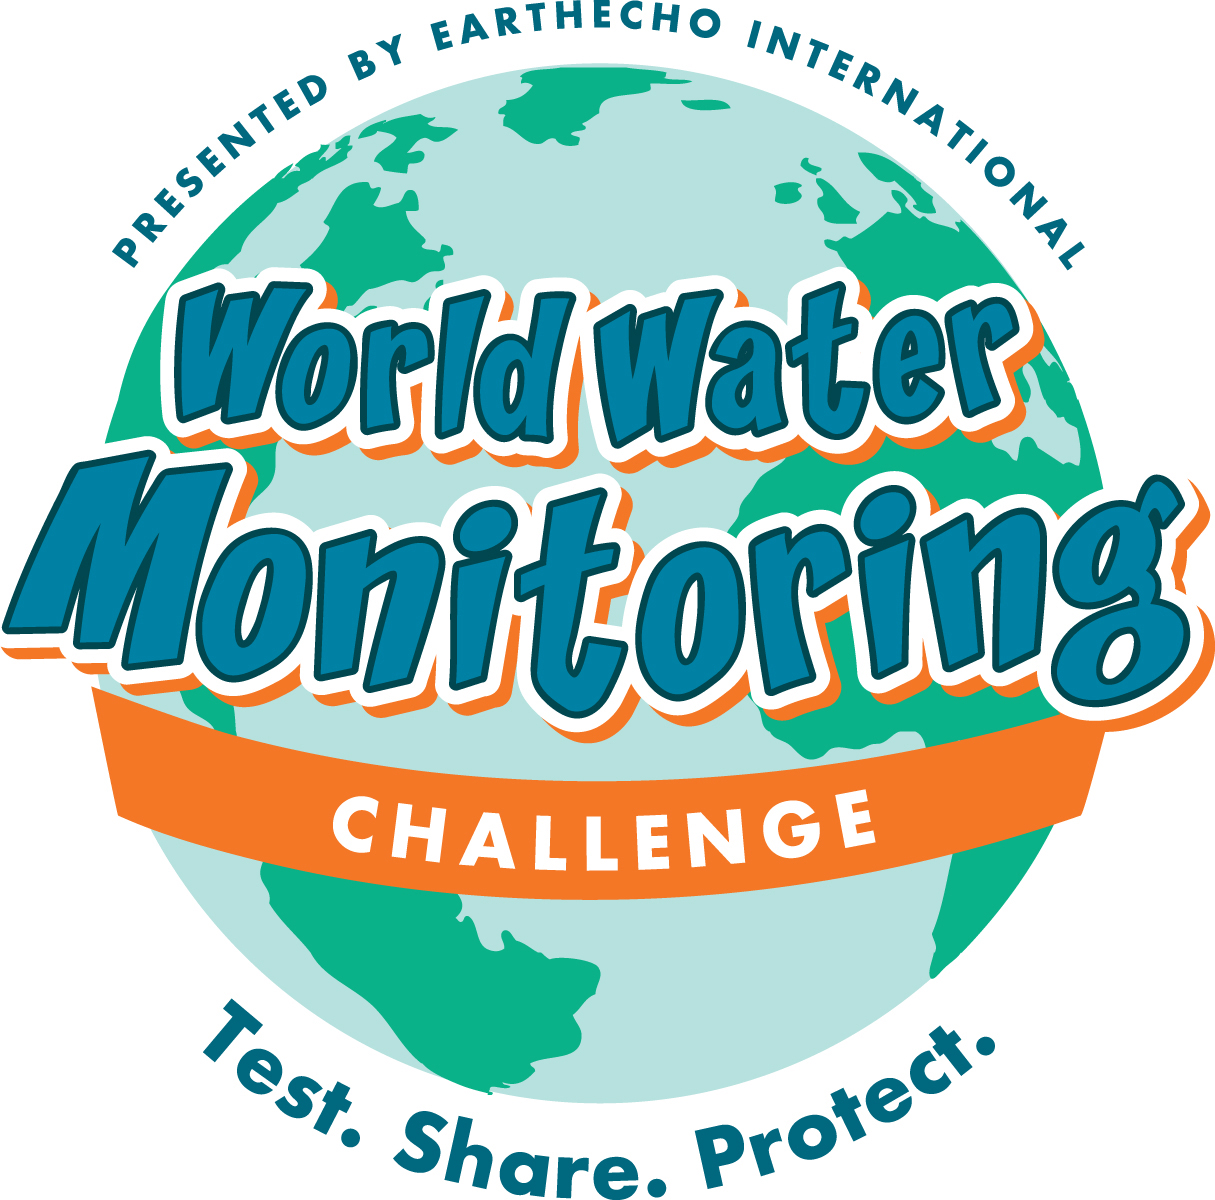 EarthEcho World Water Monitoring Challenge